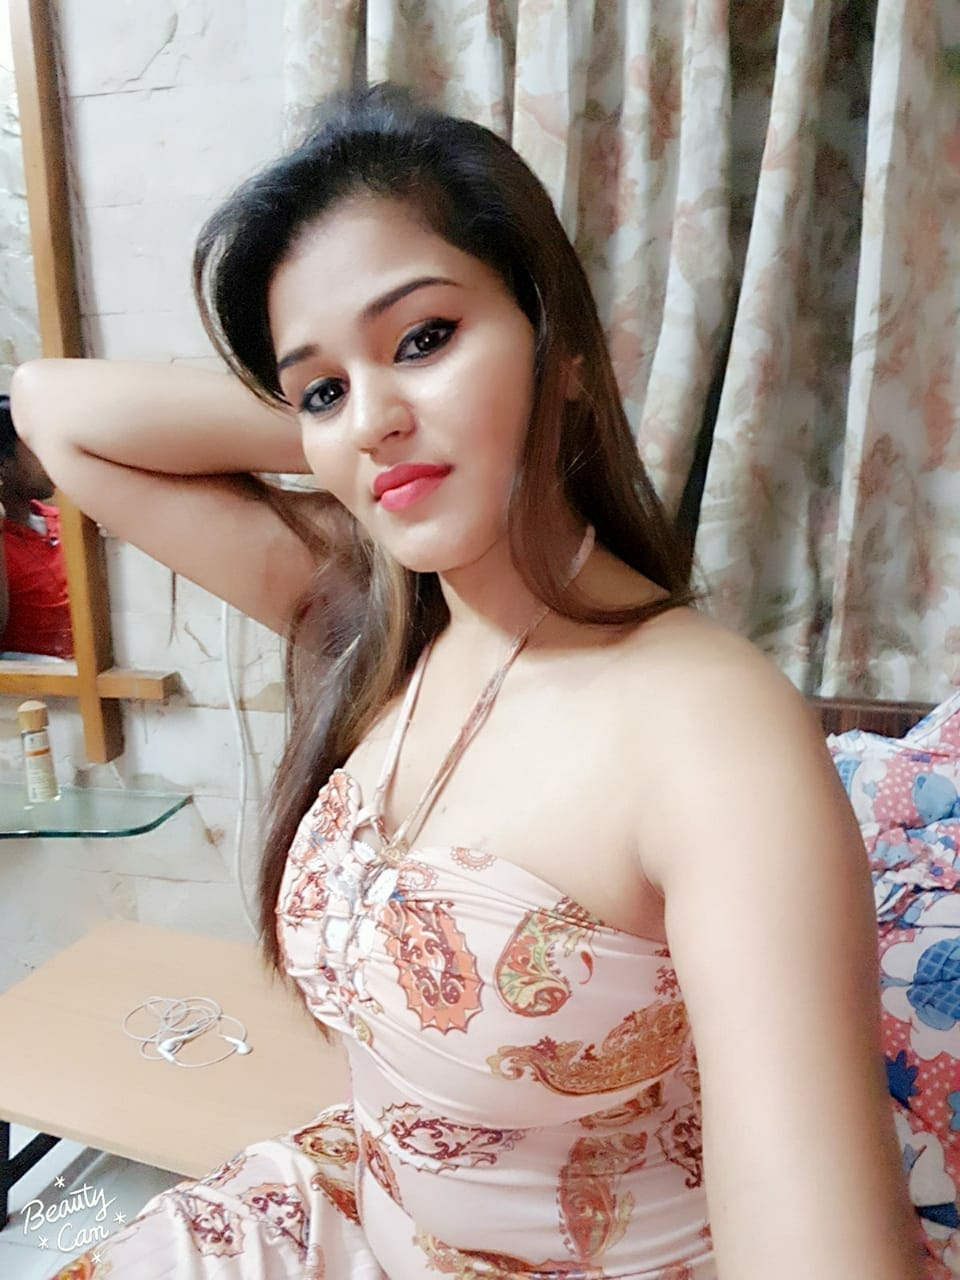 Russian Escorts In  in mumbai